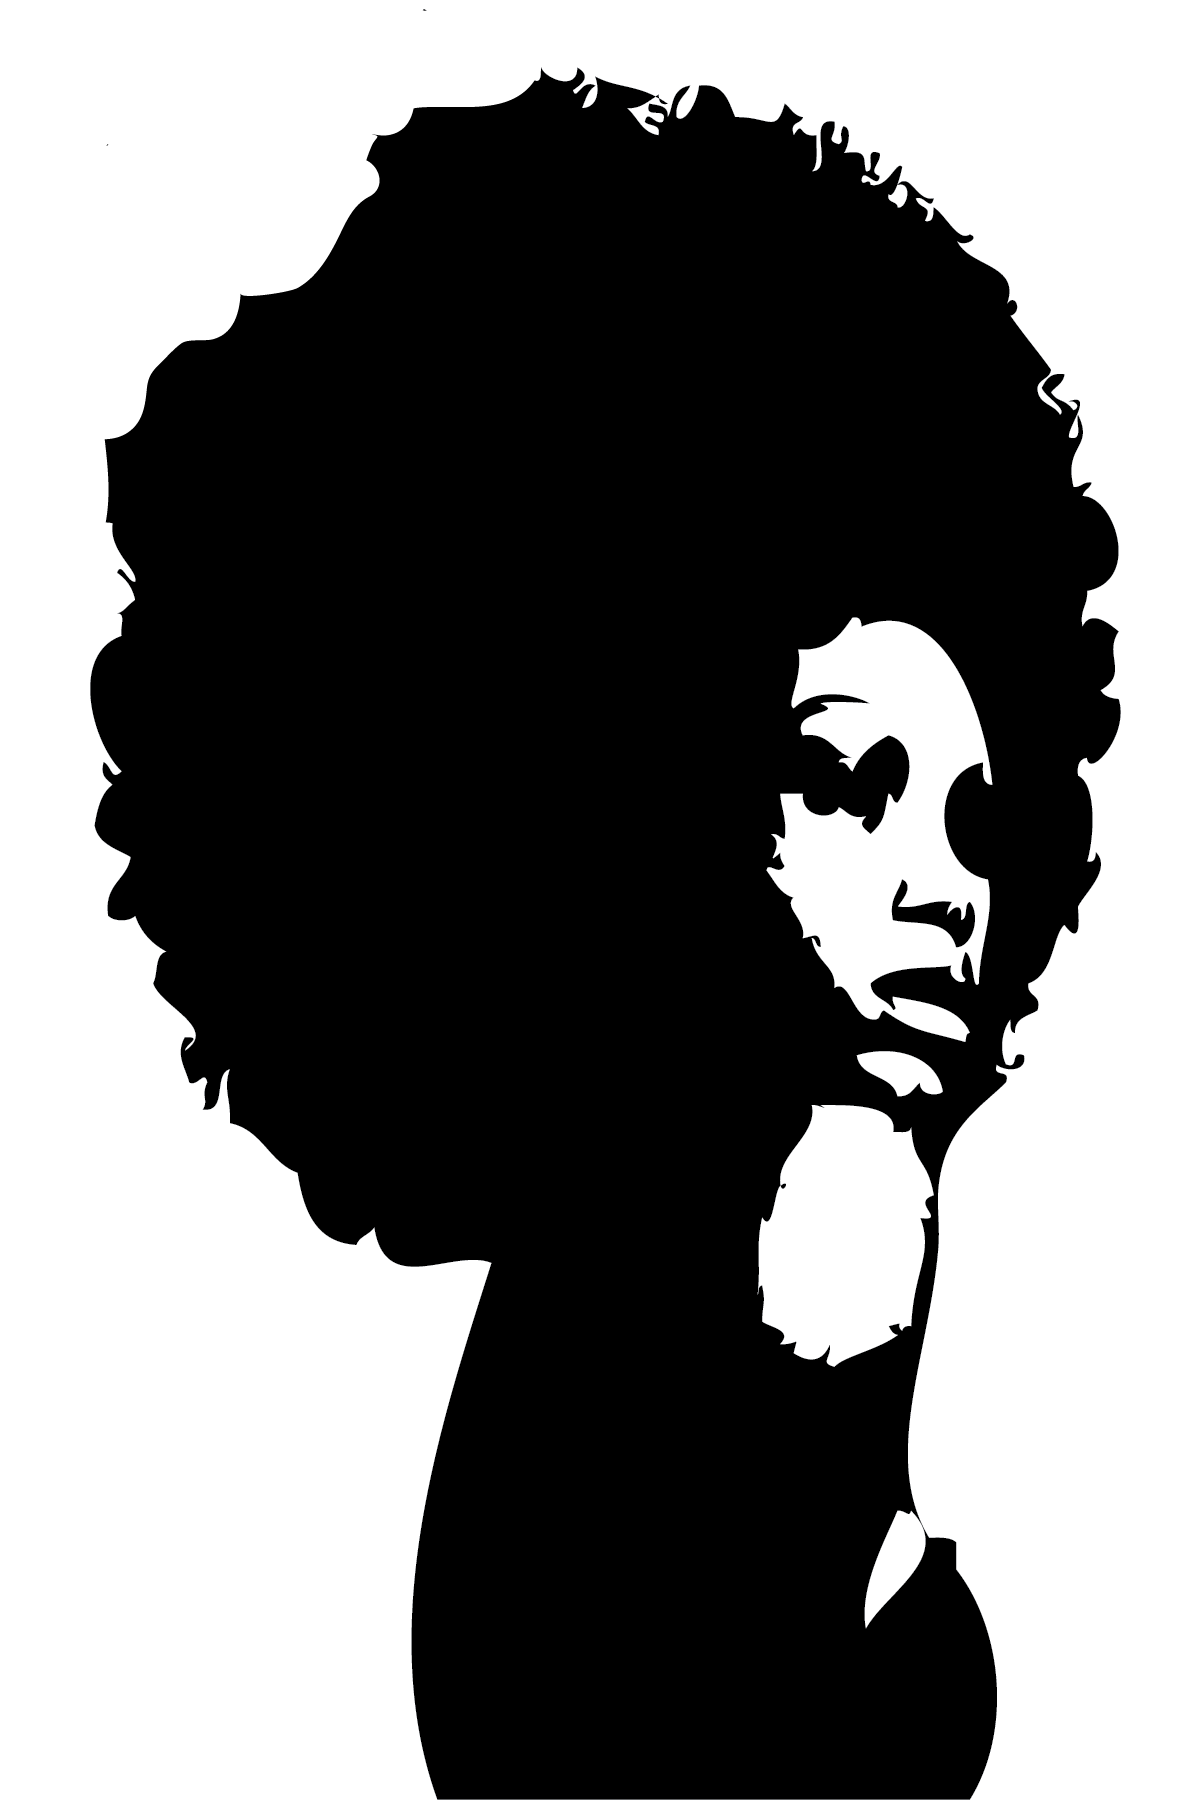 Silhouette black african american. Afro clipart afro lady